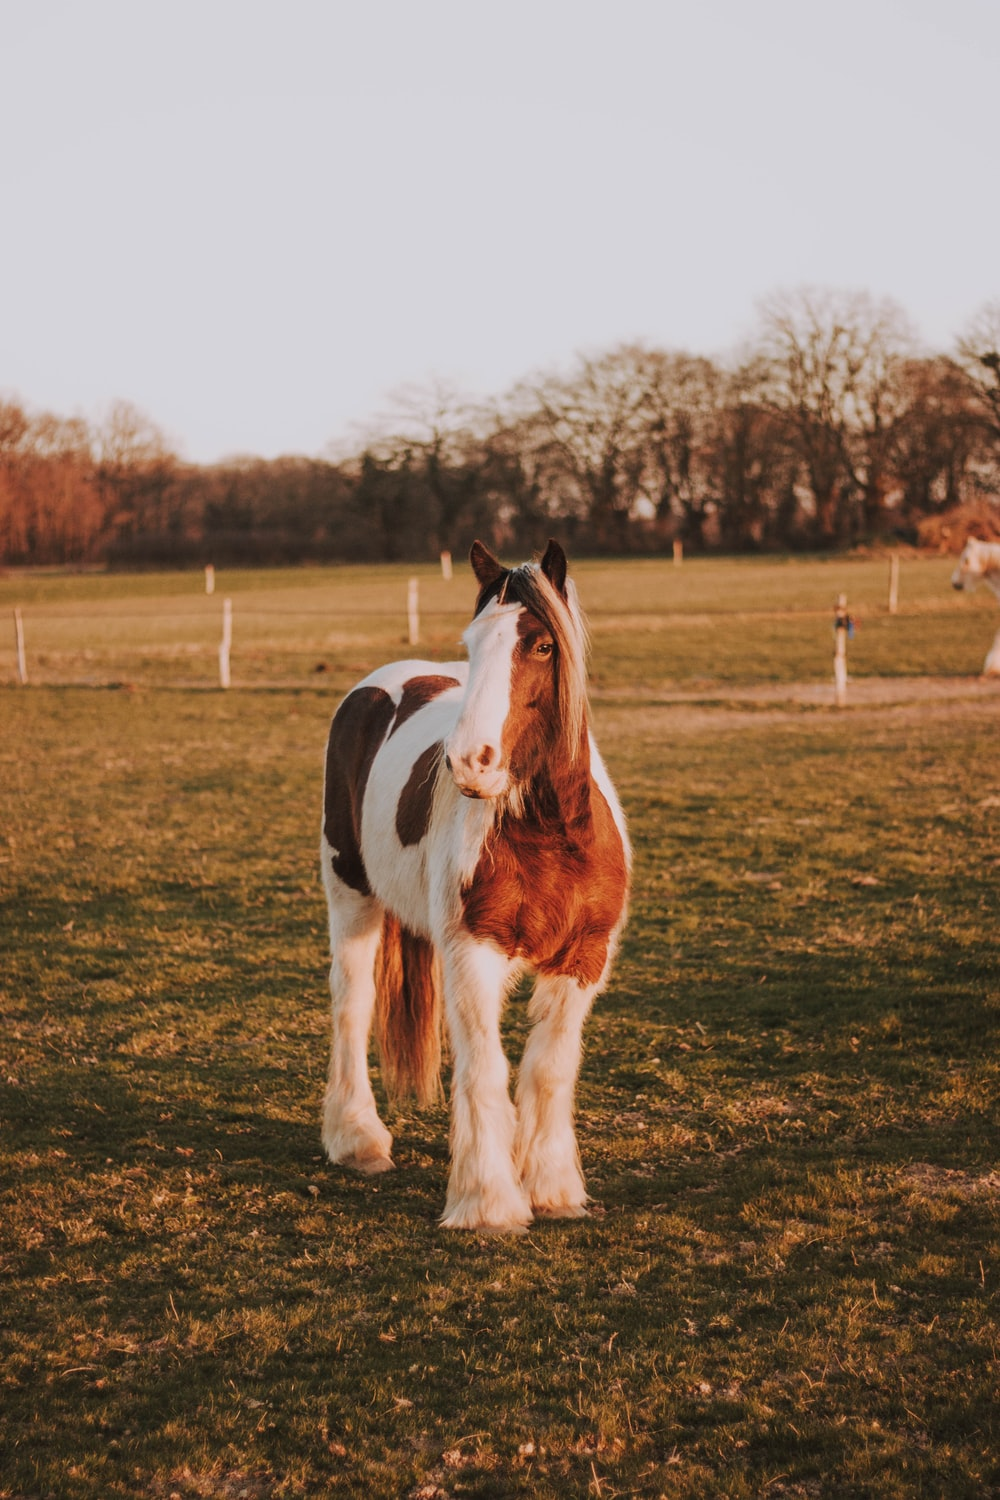 white and brown horse standing on green field during daytime